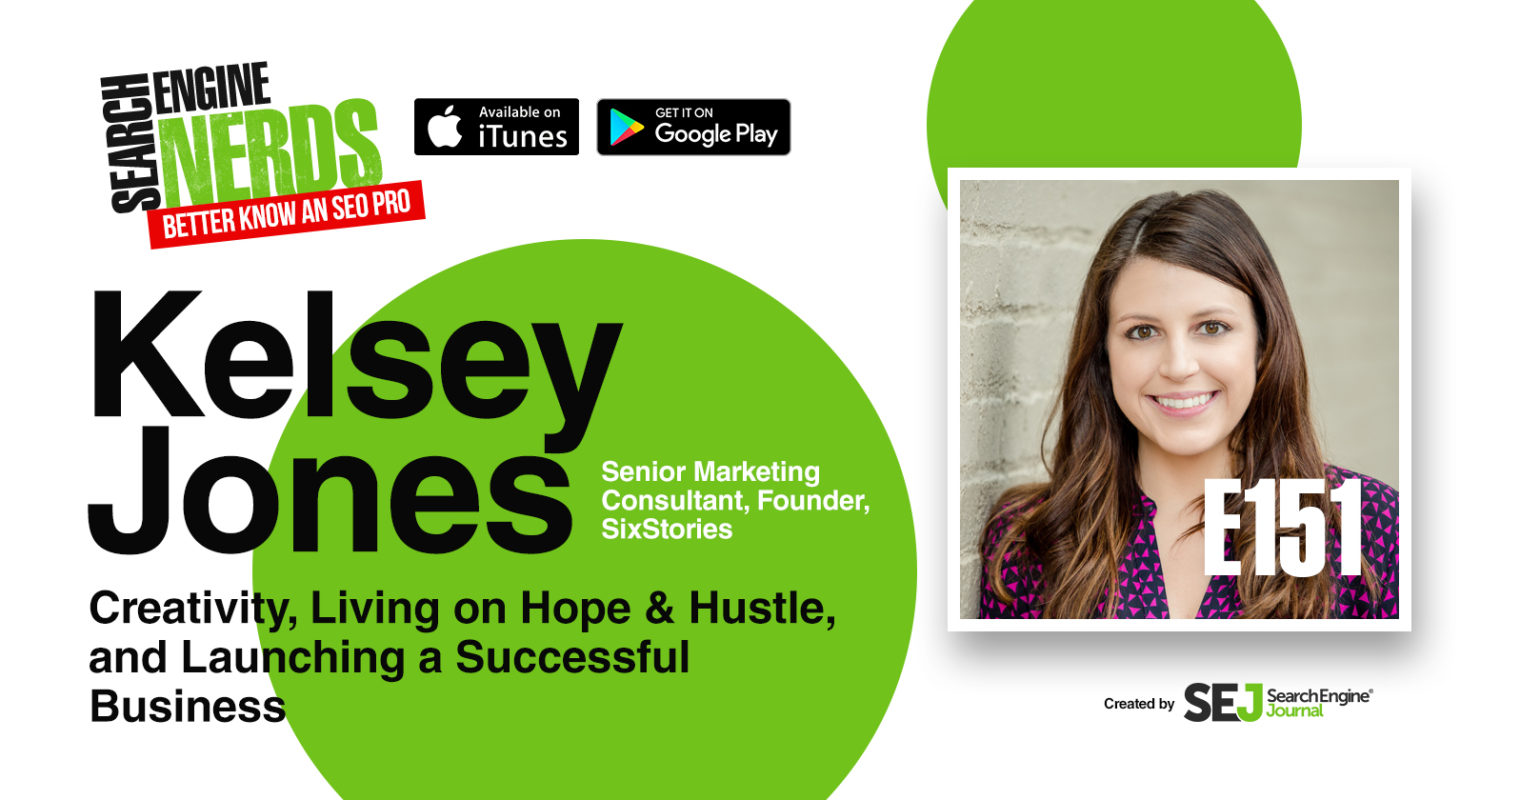 Kelsey Jones on Creativity, Living on Hope & Hustle, and Launching a Successful Business [PODCAST]